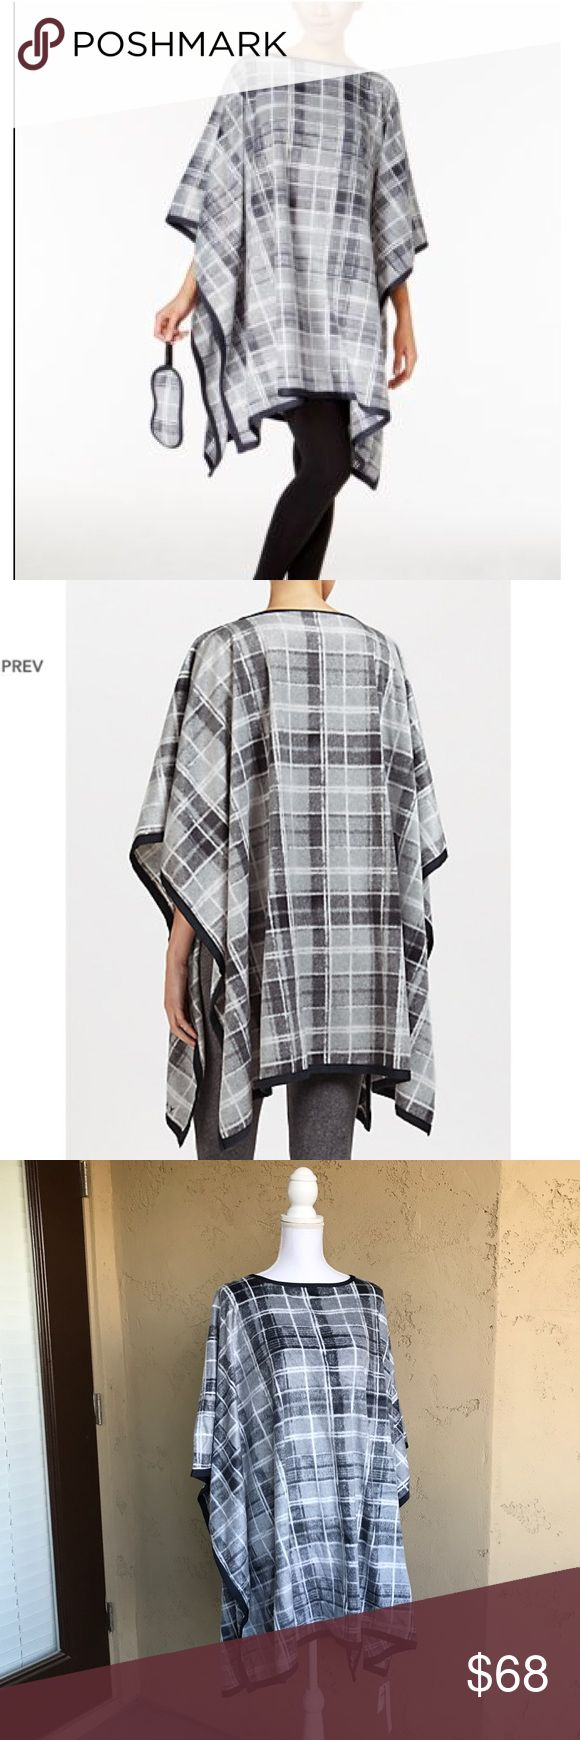 NWT DKNY Grey Poncho Plaid Eye Mask Gift Set Perfect for traveling or to indulge in restful sleep, this cosy set is crafted from soft plush fleece for a luxuriously warm feel. Printed with a classic check design, the poncho slips over the body with a round neckline, asymmetric hem and deep side slits for effortless layering and comfortable wear. Paired with a coordinating eye mask that pulls over the head with the snug elasticated band, drift off into a peaceful slumber and envelop yourself…